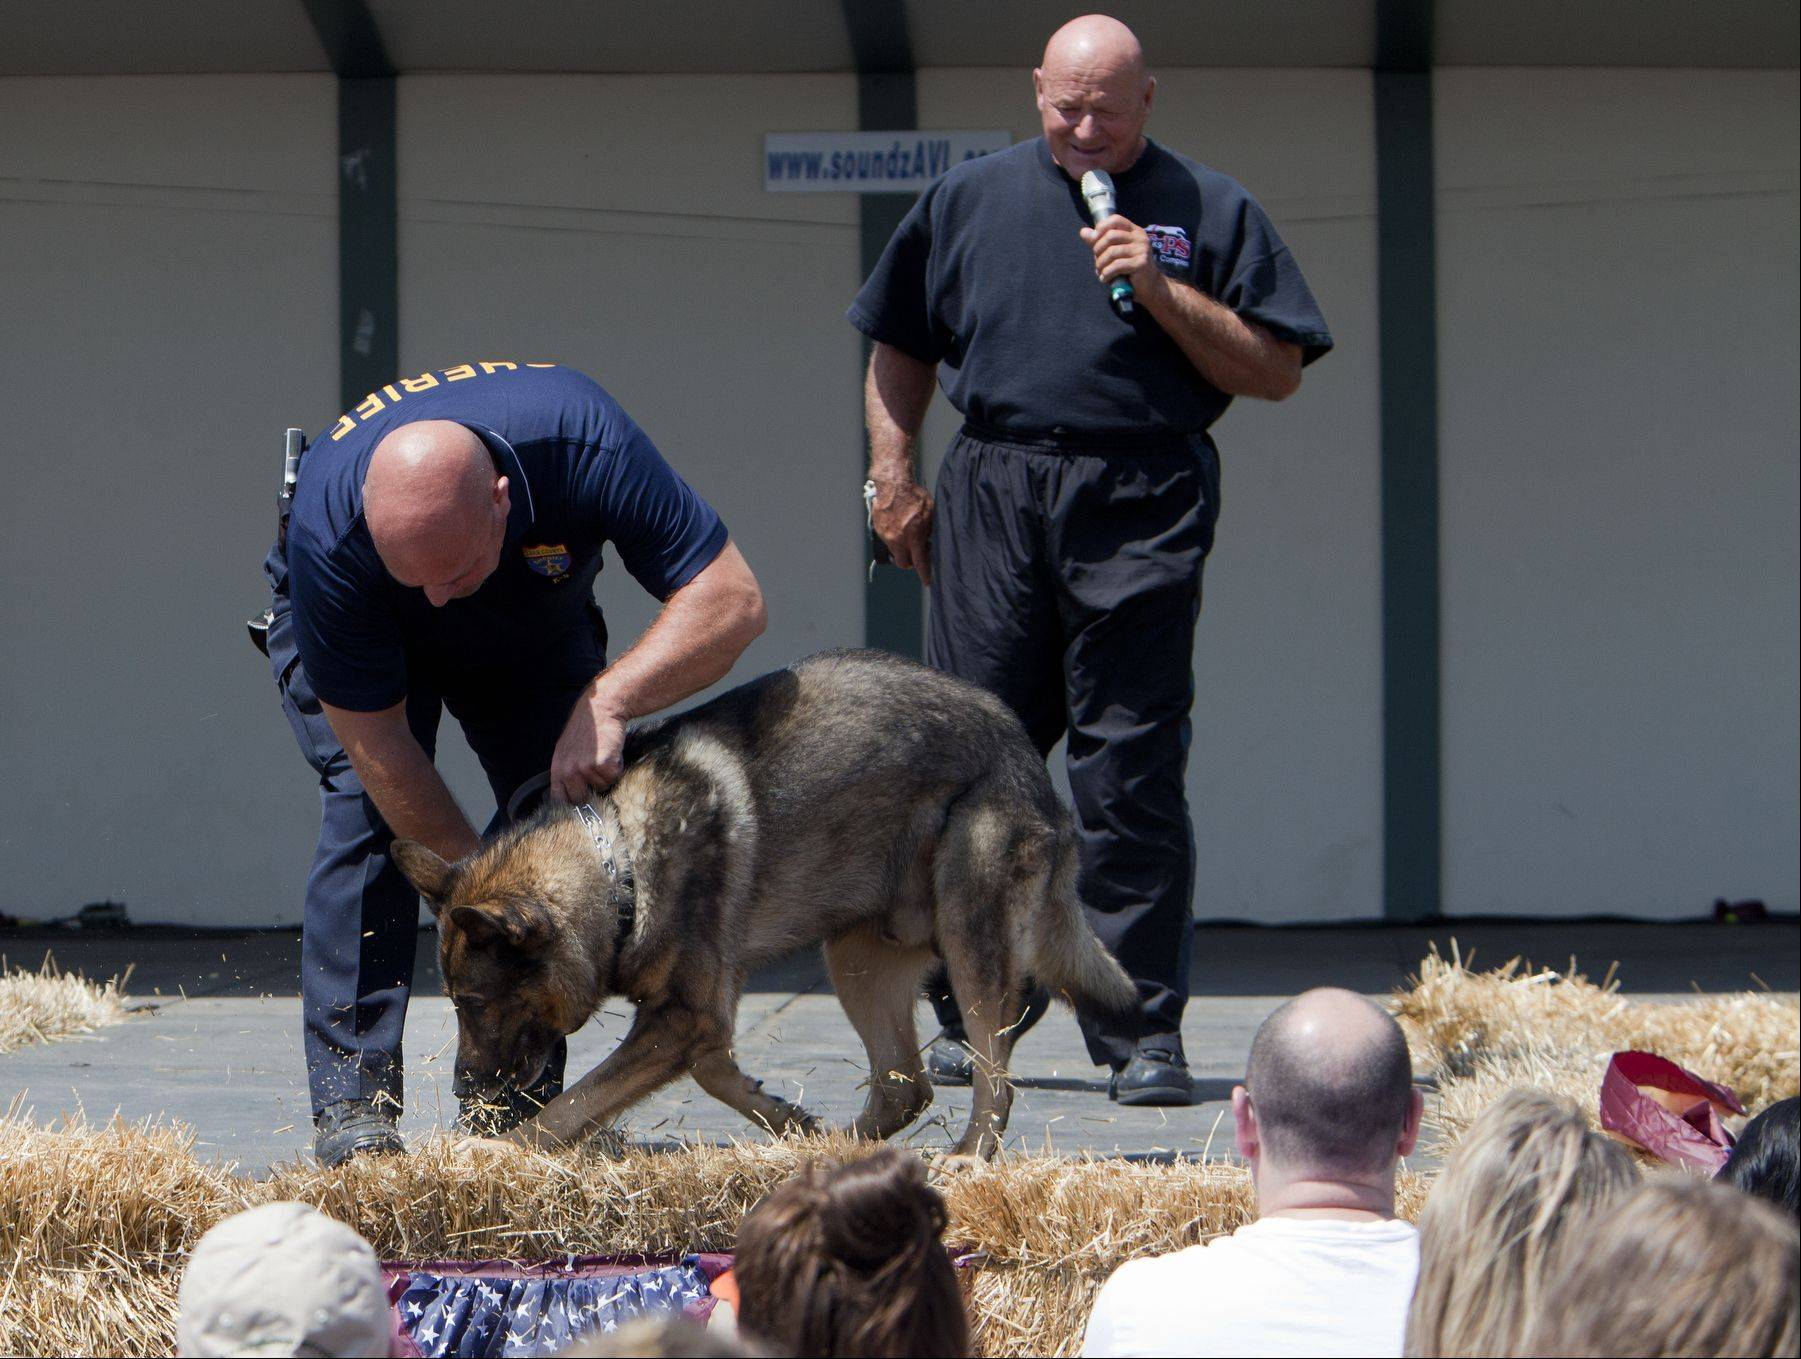 Lake County Sherif K-9 Officer Tony Fanella shows the audience how Thor digs to find and help point out where narcotics may be hidden, also pictured Tops in Training in Grayslake owner Alex Rothacker.